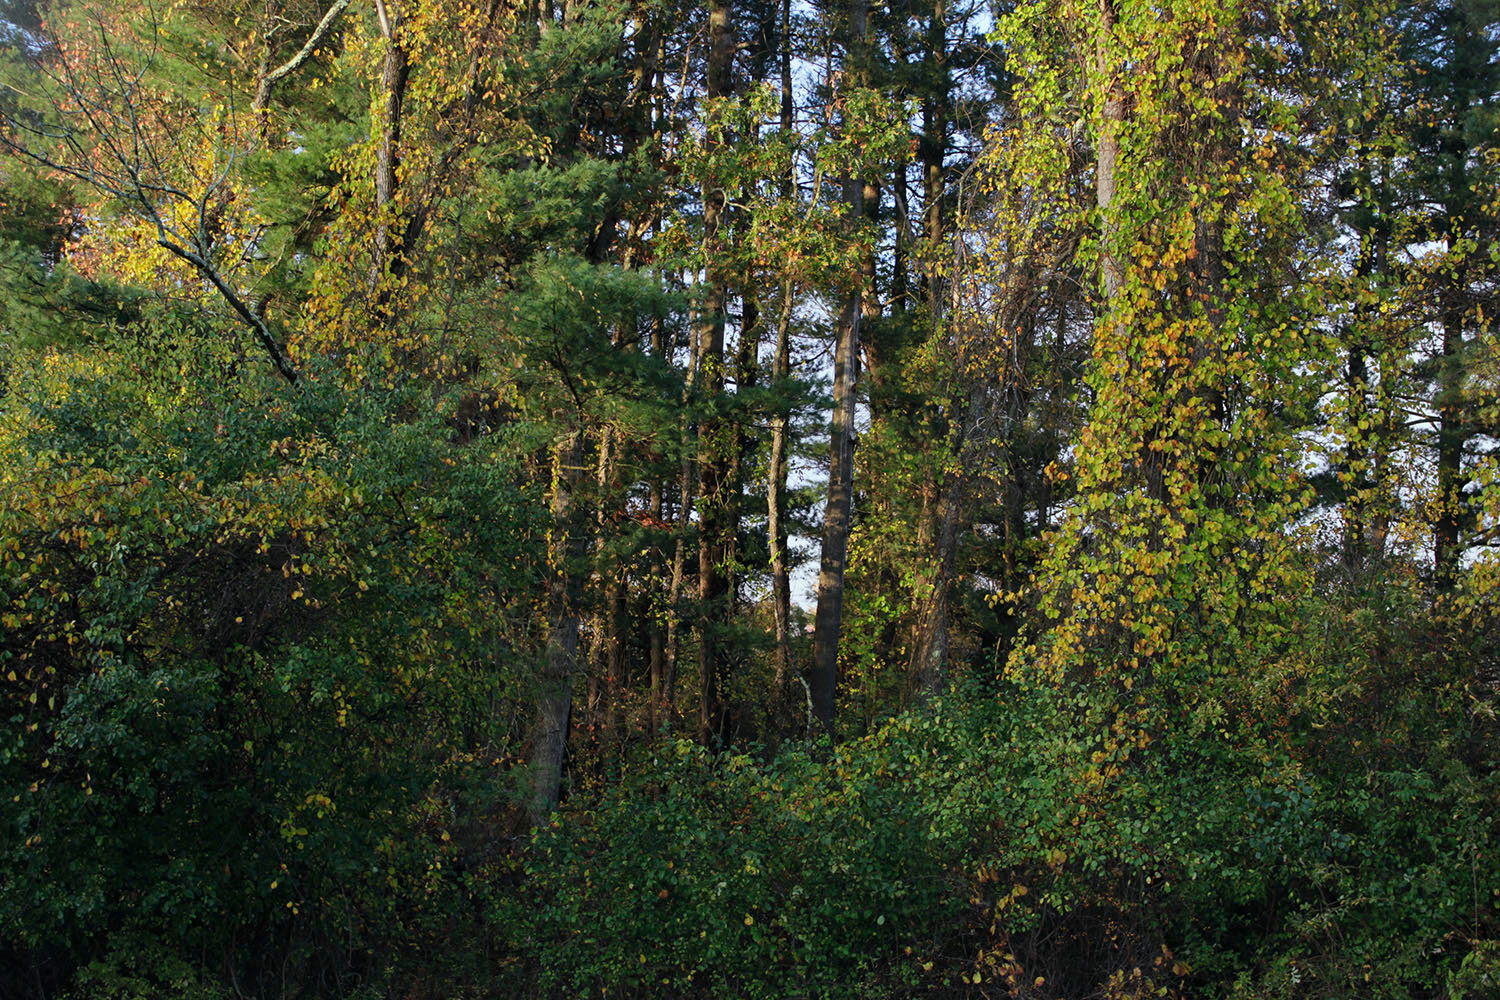 02_res108_forestS.jpg